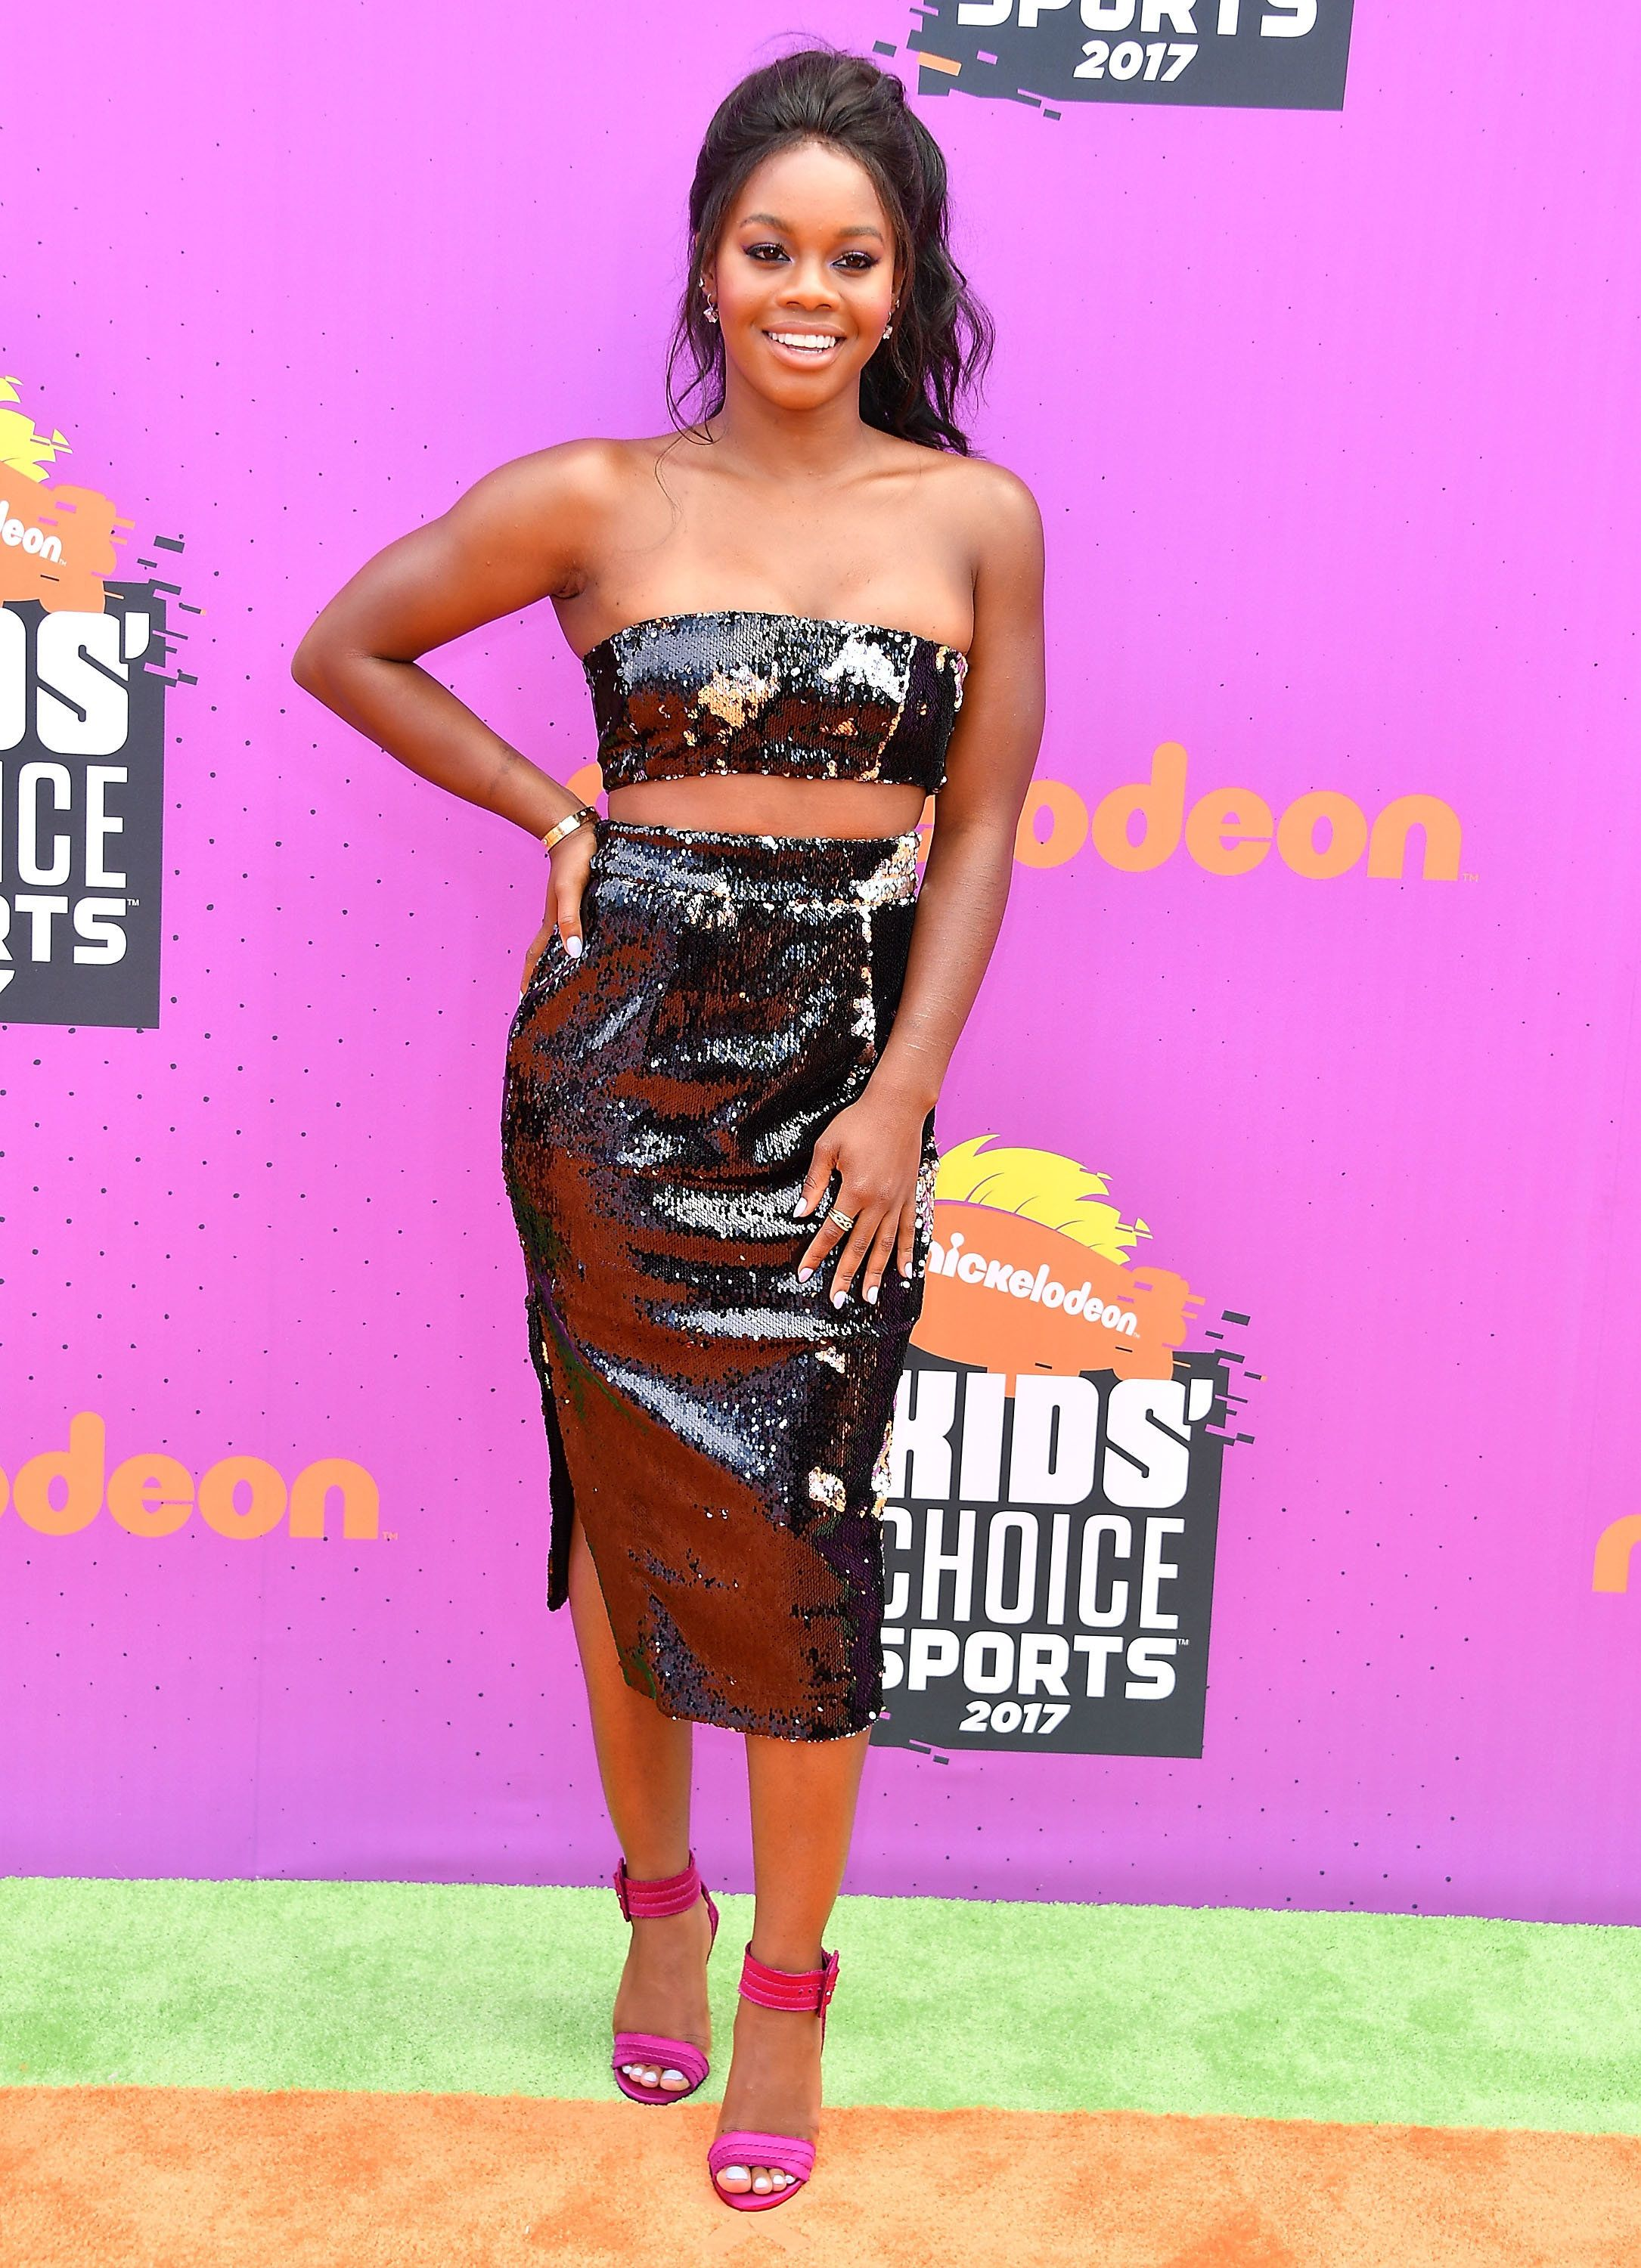 LOS ANGELES, CA - JULY 13:  Gabby Douglas arrives at the Nickelodeon Kids' Choice Sports Awards 2017 at Pauley Pavilion on July 13, 2017 in Los Angeles, California.  (Photo by Steve Granitz/WireImage)